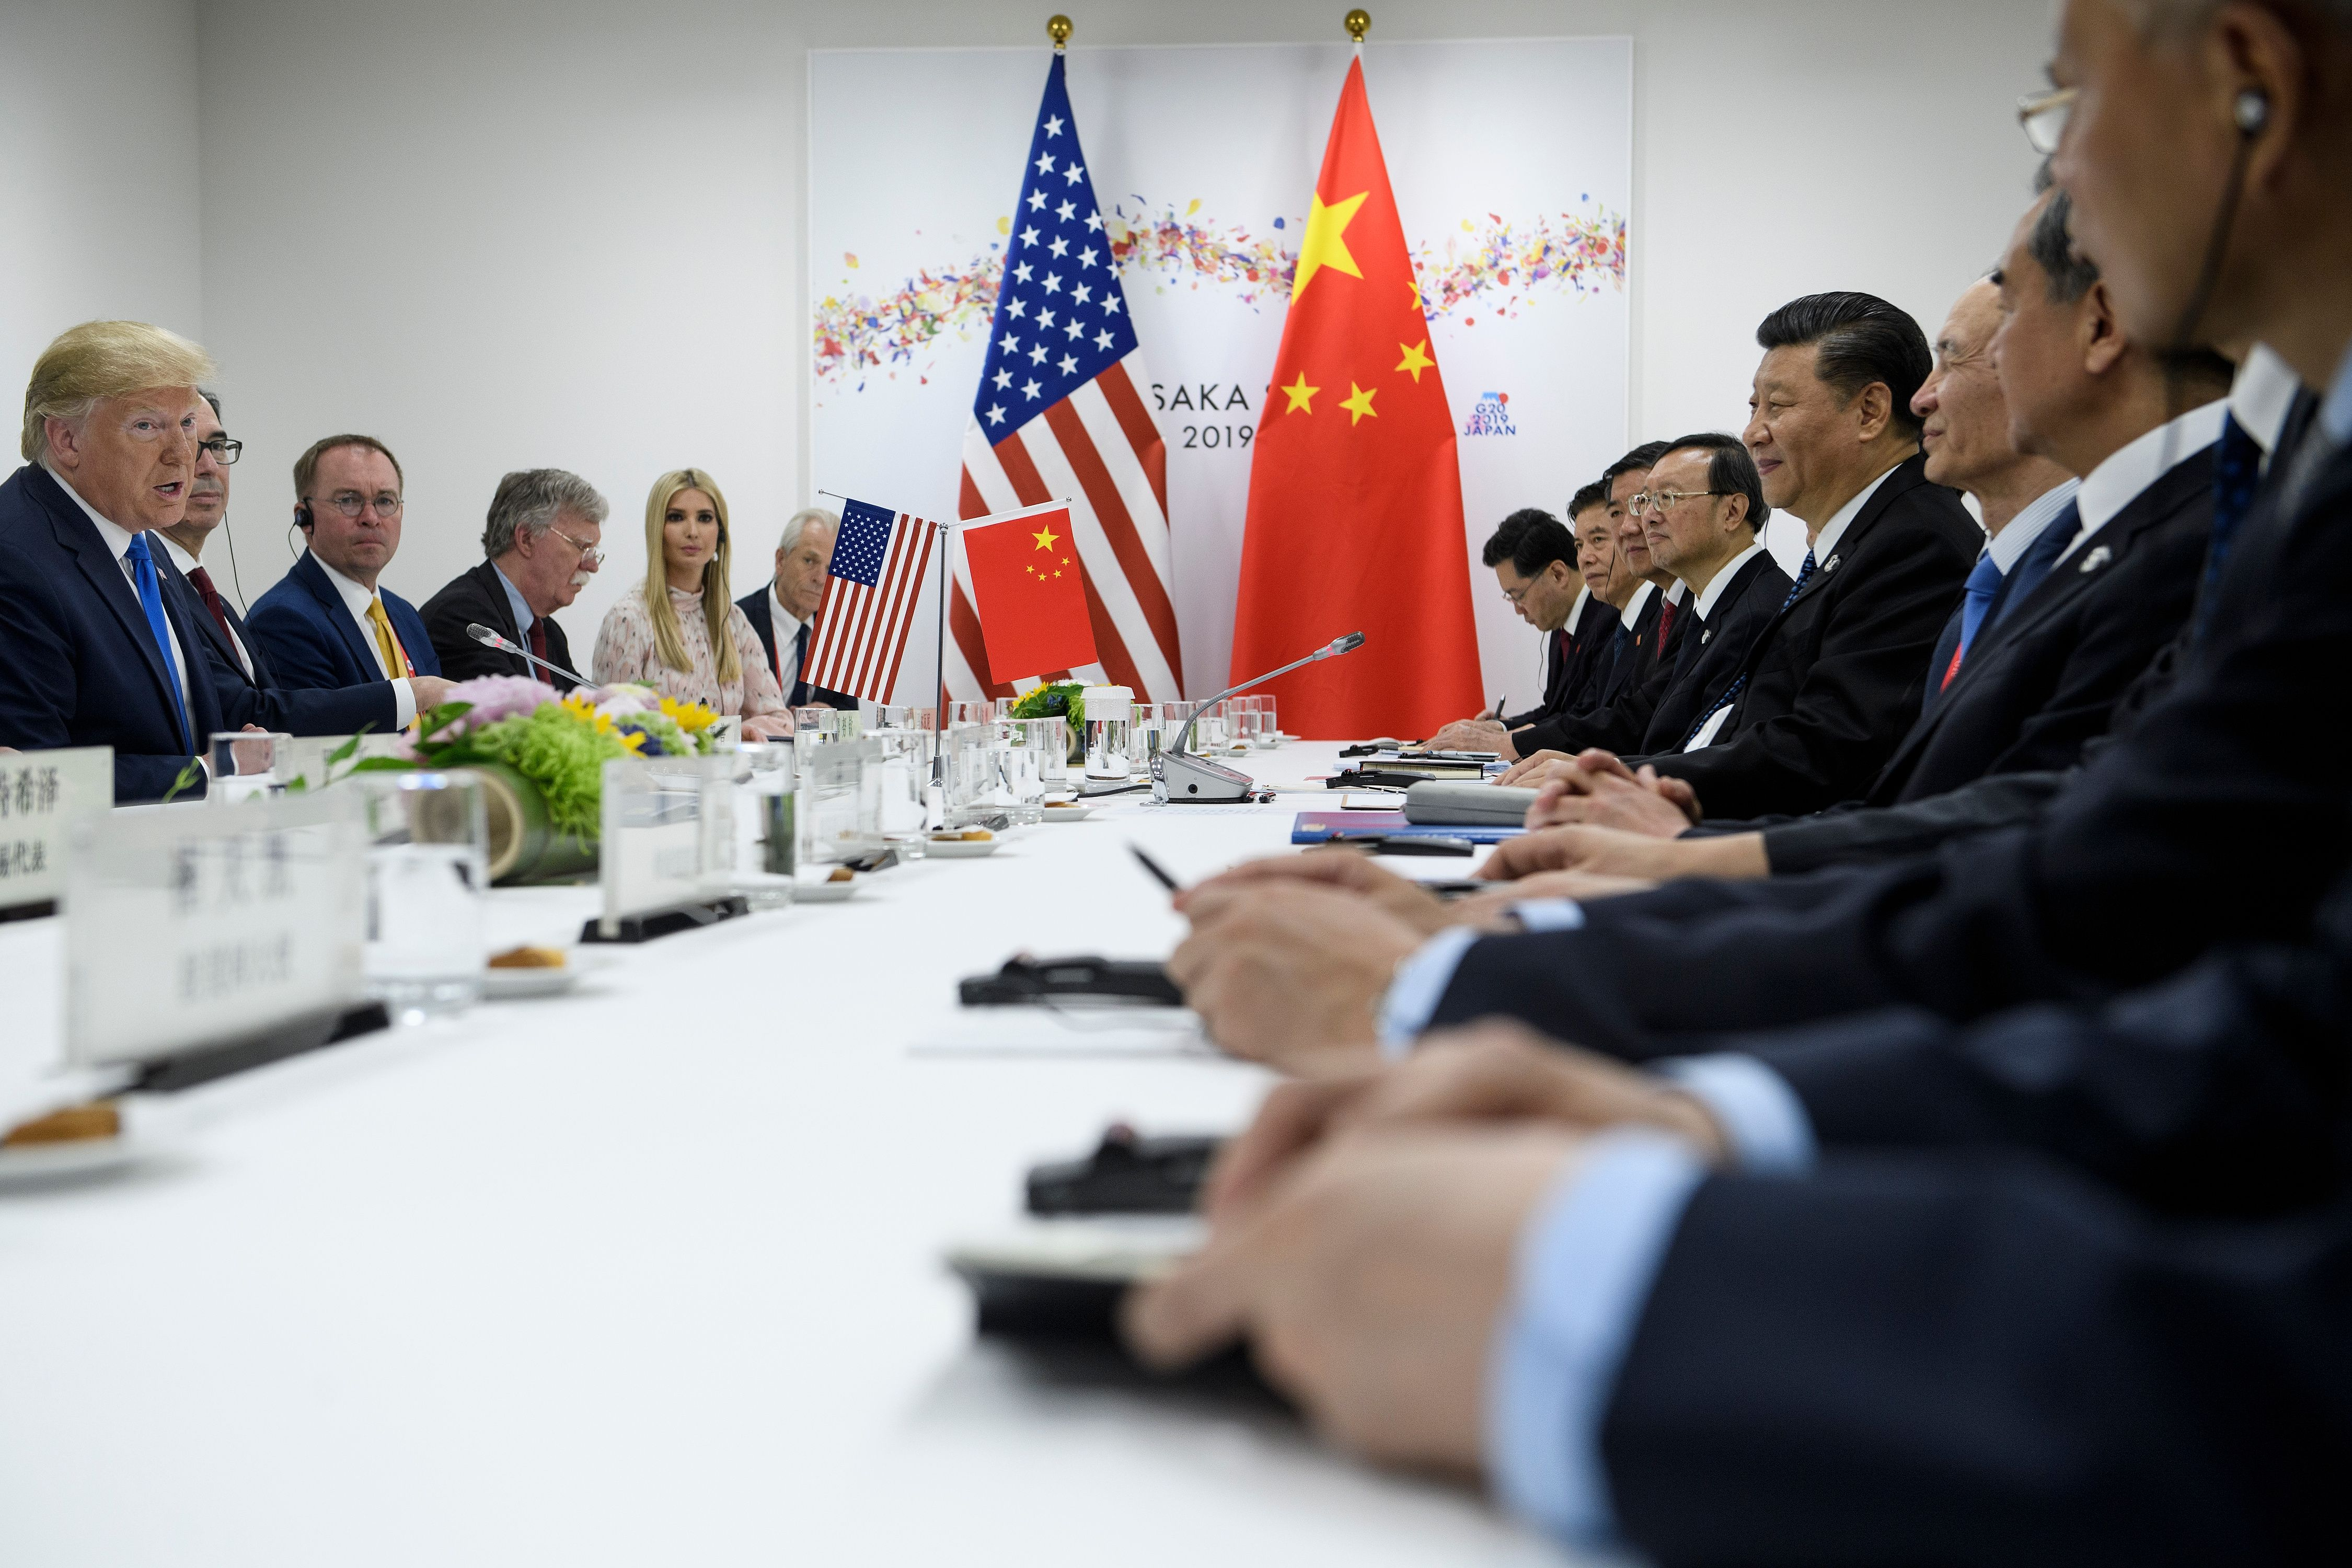 US President Donald Trump and China's President Xi Jinping attend a bilateral meeting on the sidelines of the G20 Summit in Osaka on June 29, 2019. (Photo by Brendan Smialowski / AFP) (Photo credit should read BRENDAN SMIALOWSKI/AFP/Getty Images)